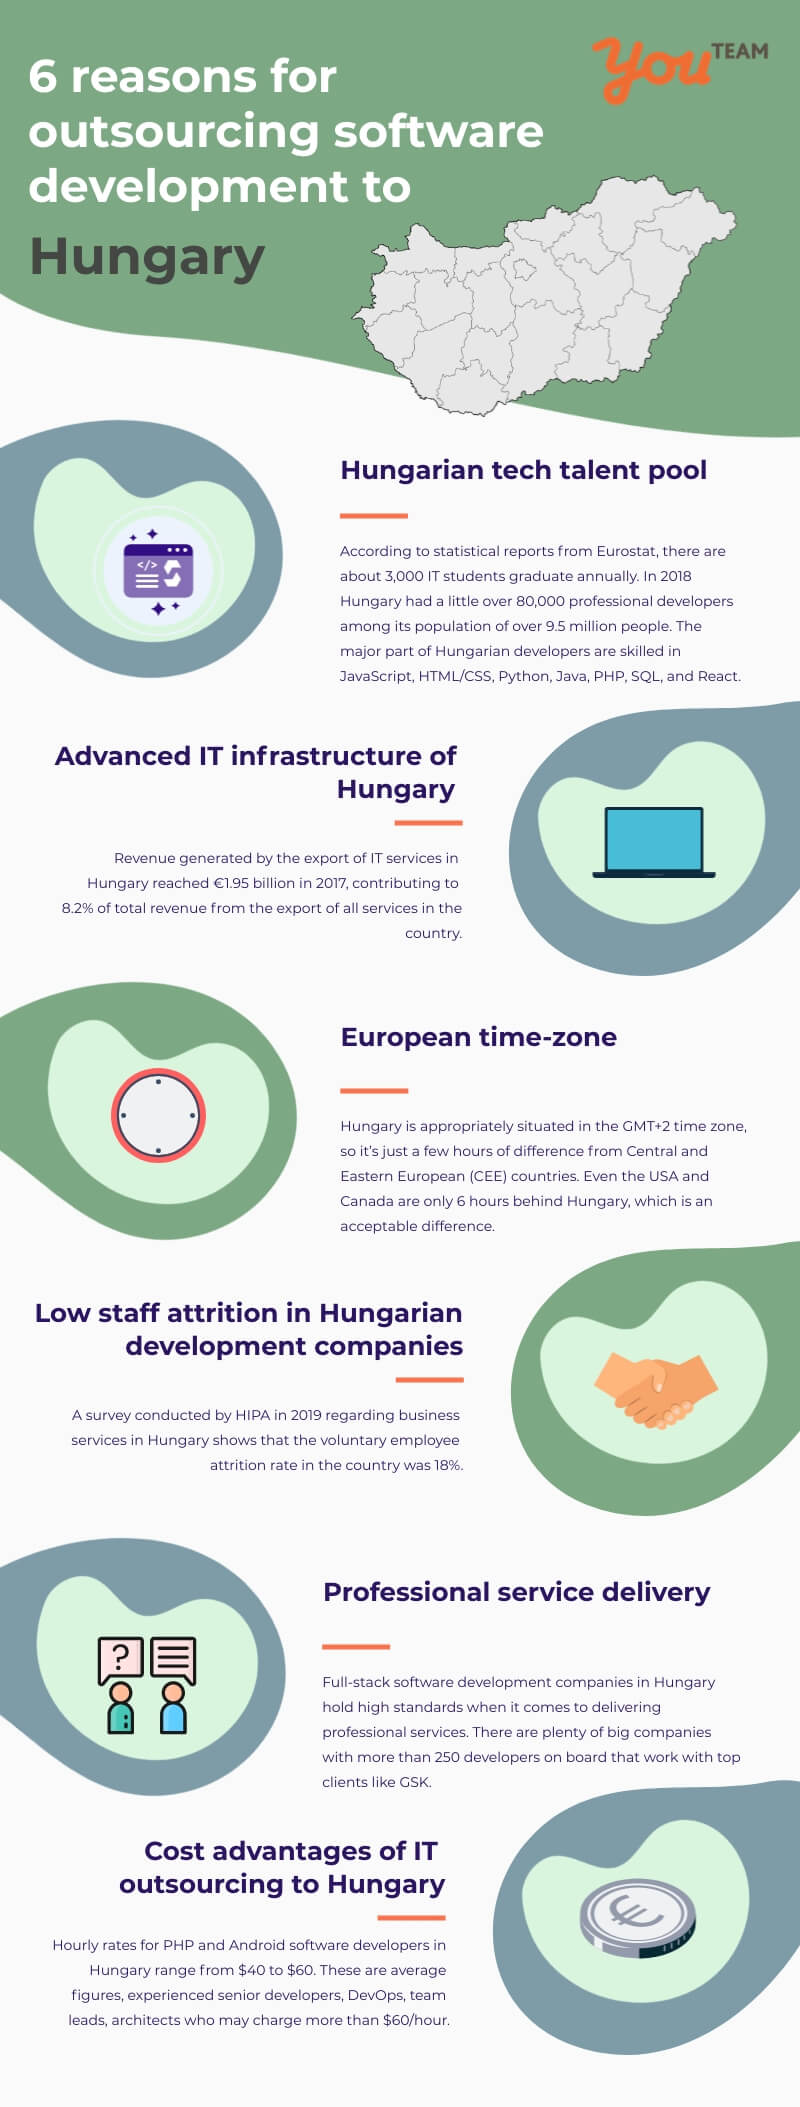 Hire developers from Hungary